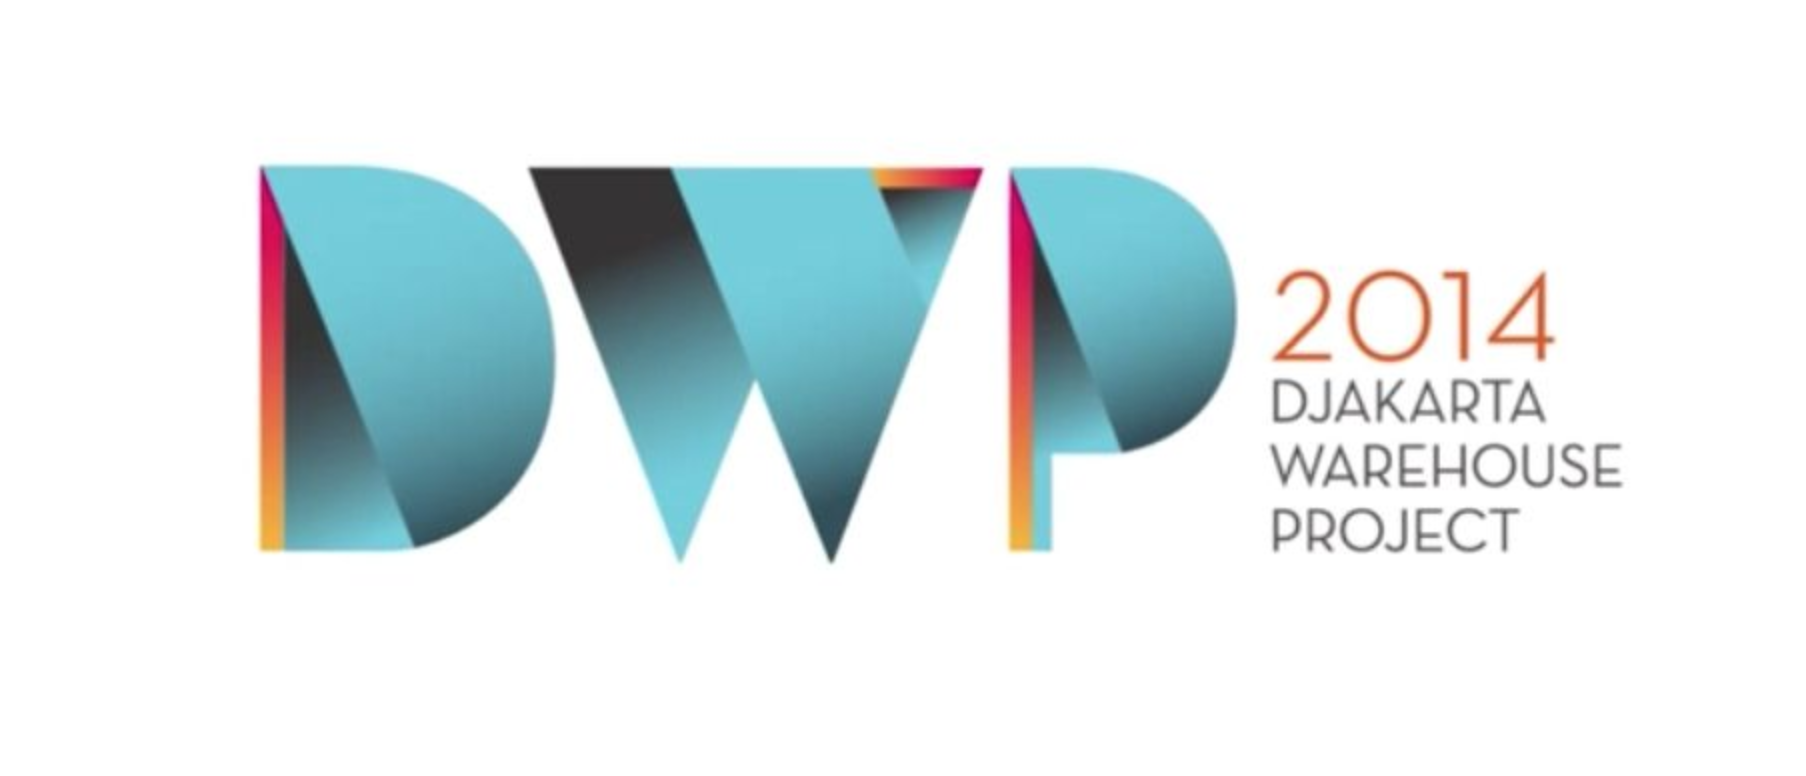 You are currently viewing Djakarta Warehouse Project